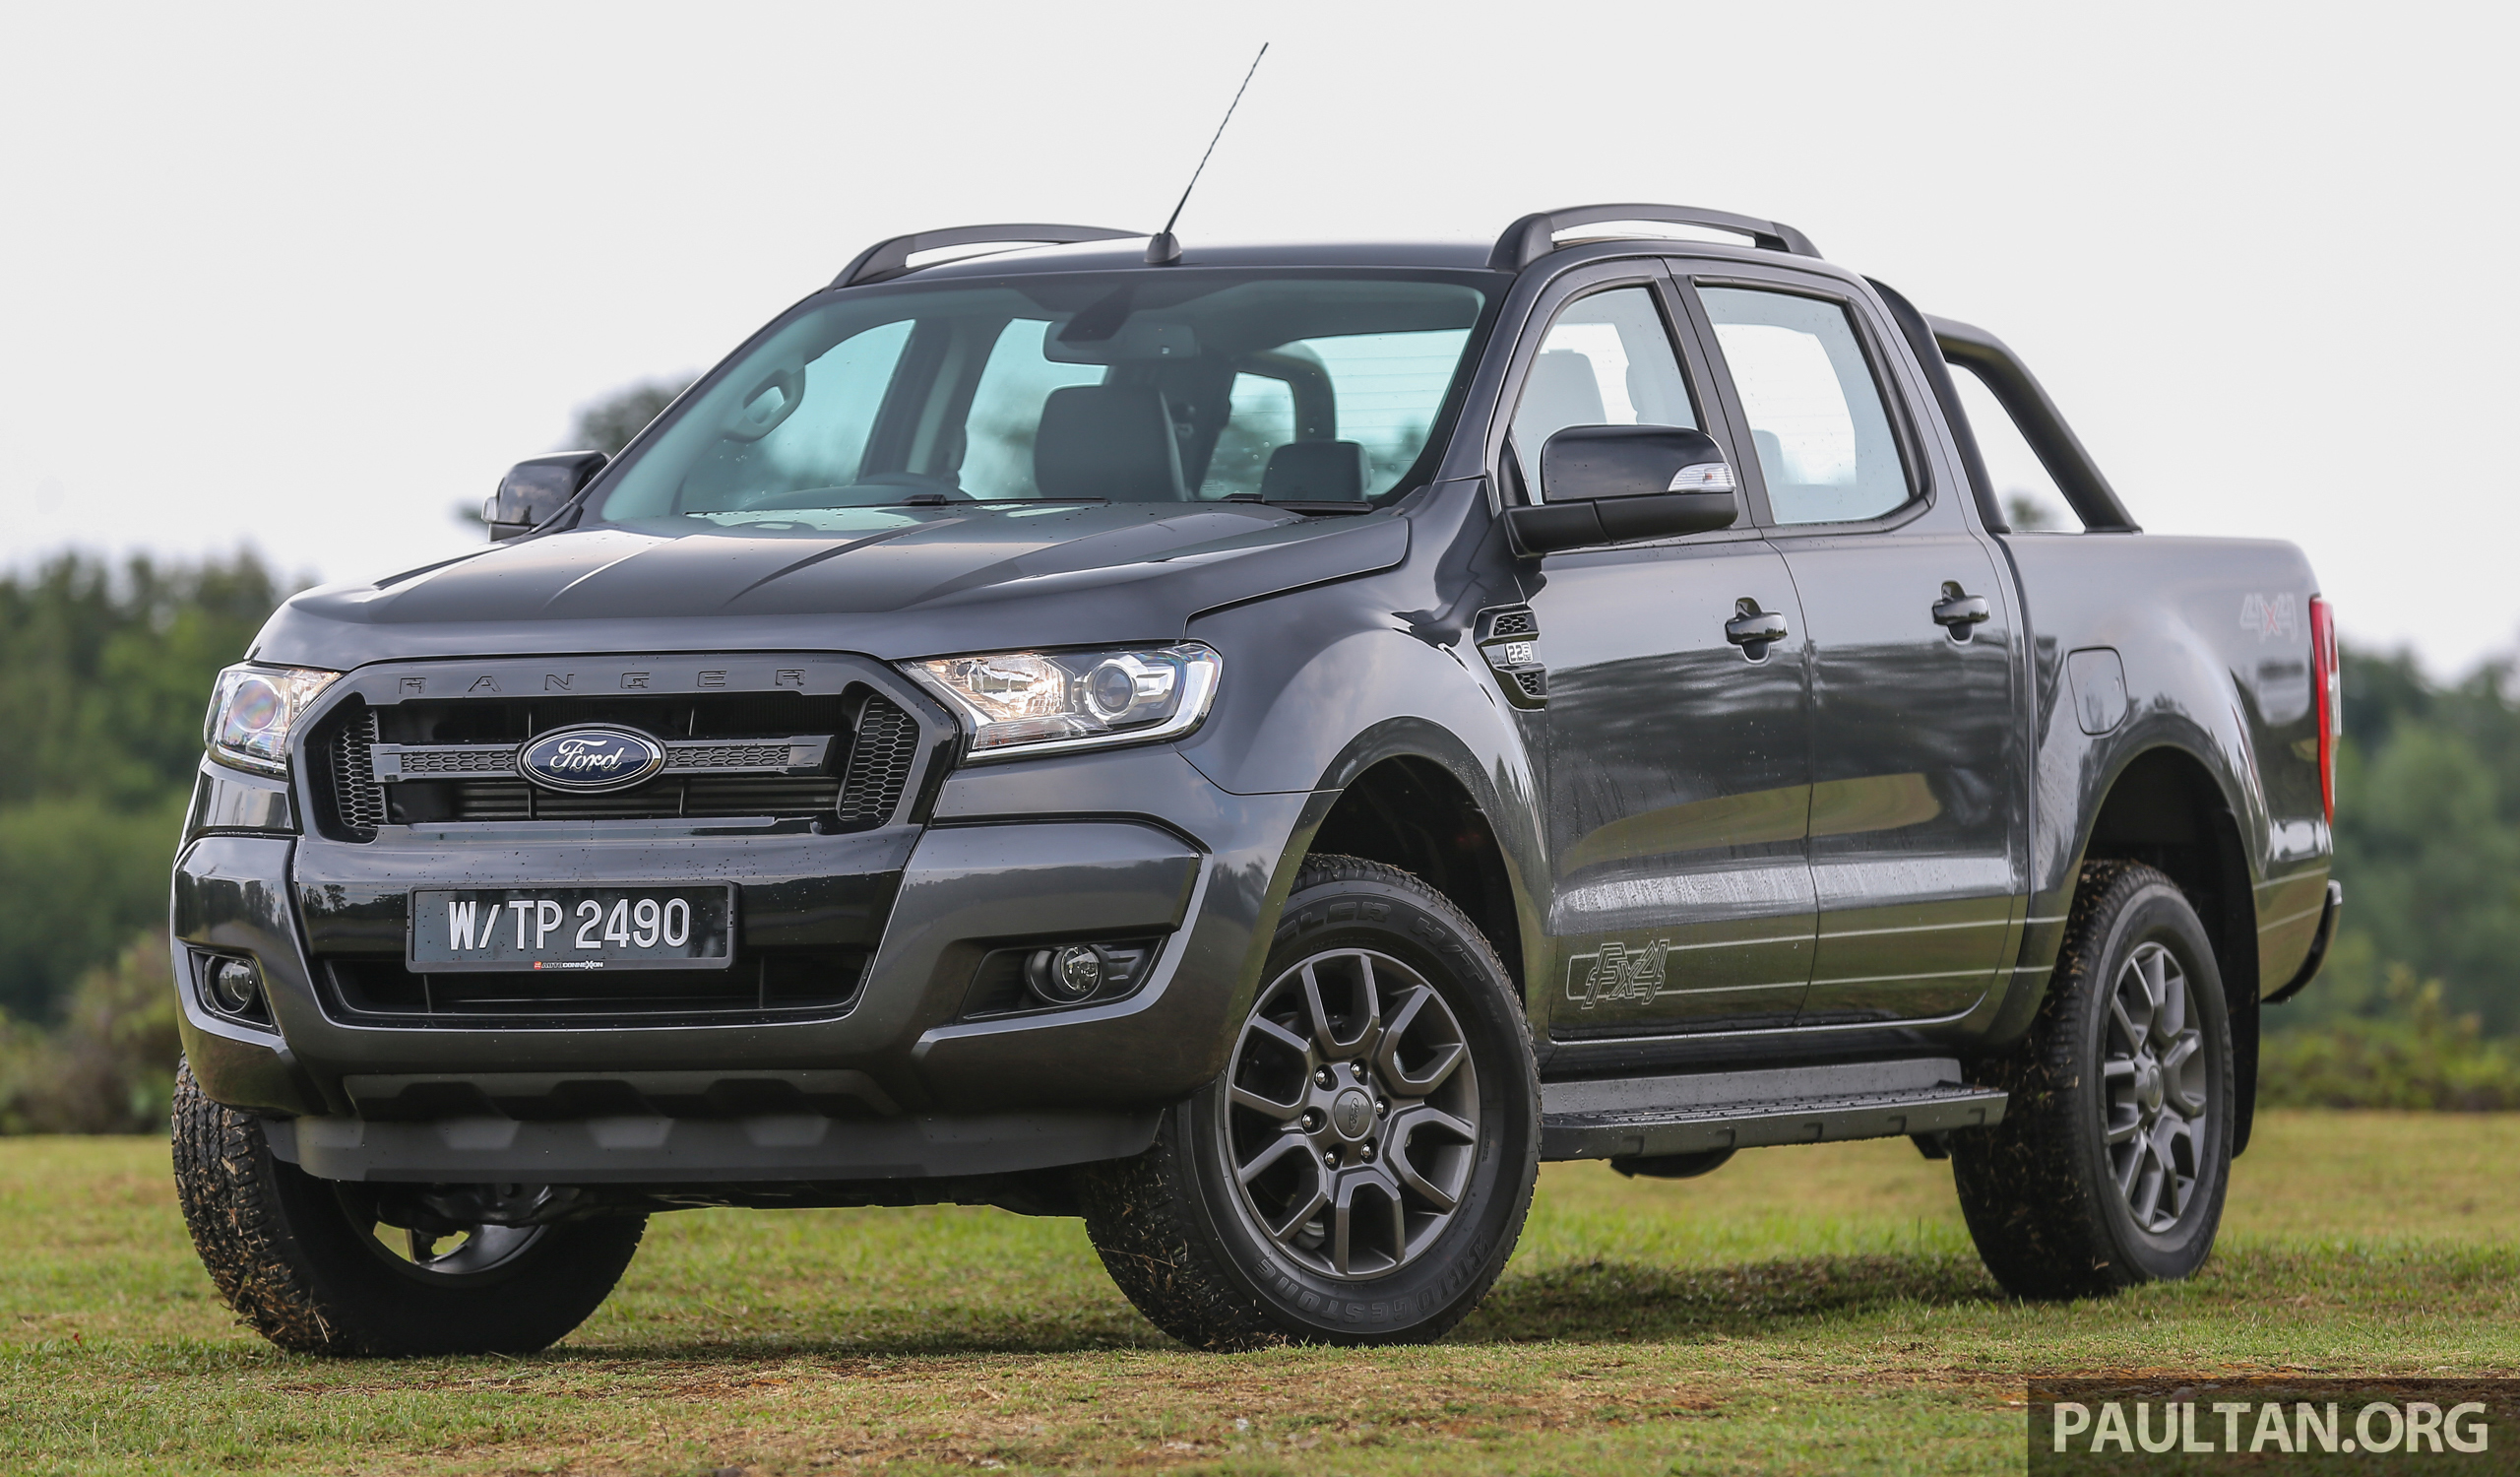 ford ranger nz with Ford Ranger Fx4 Ext 4 on Standard furthermore 608357017 220 1386 as well 2015 Polaris Ranger Side By Side 4 Seater in addition Review additionally 2018 Ford Ranger Raptor.